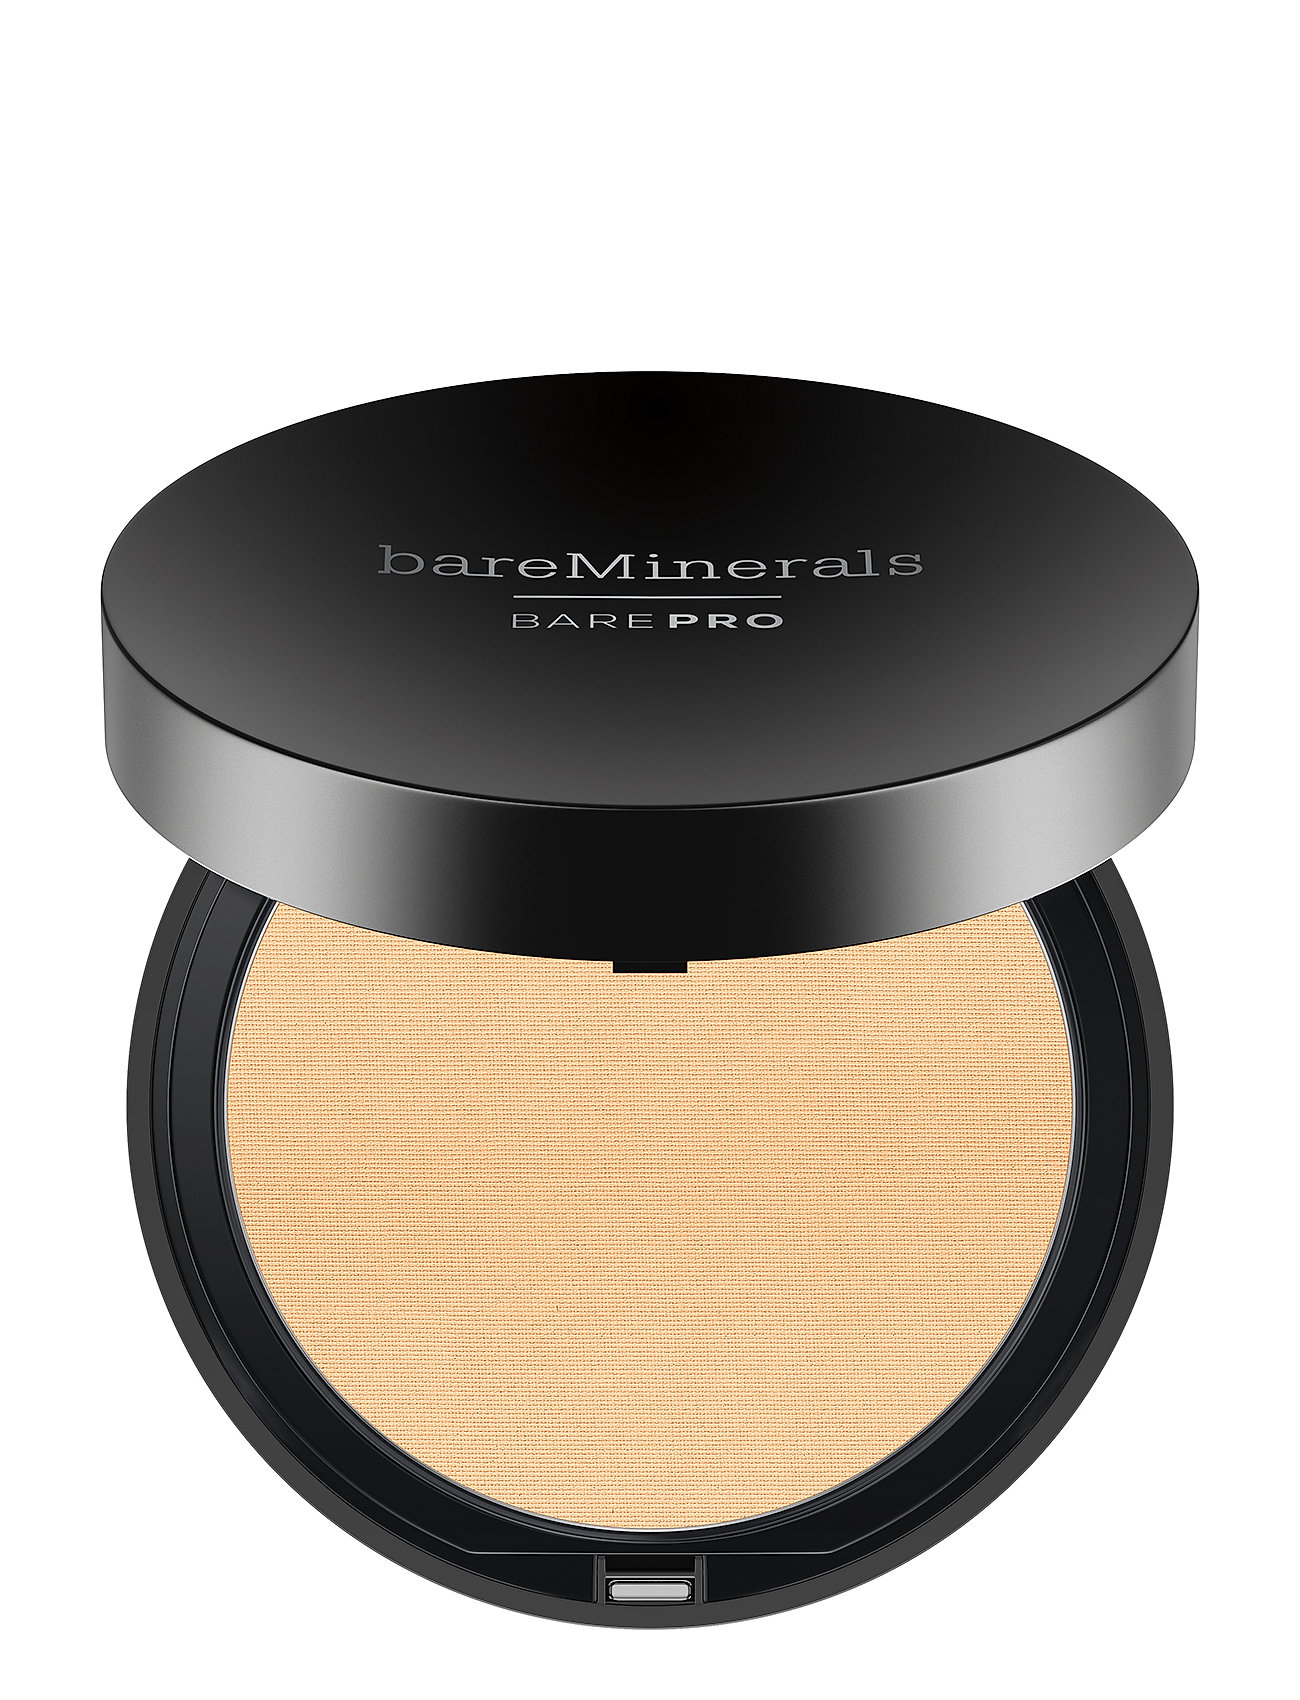 Image of Barepro Performance Wear Powder Foundation Foundation Makeup BareMinerals (3251433703)